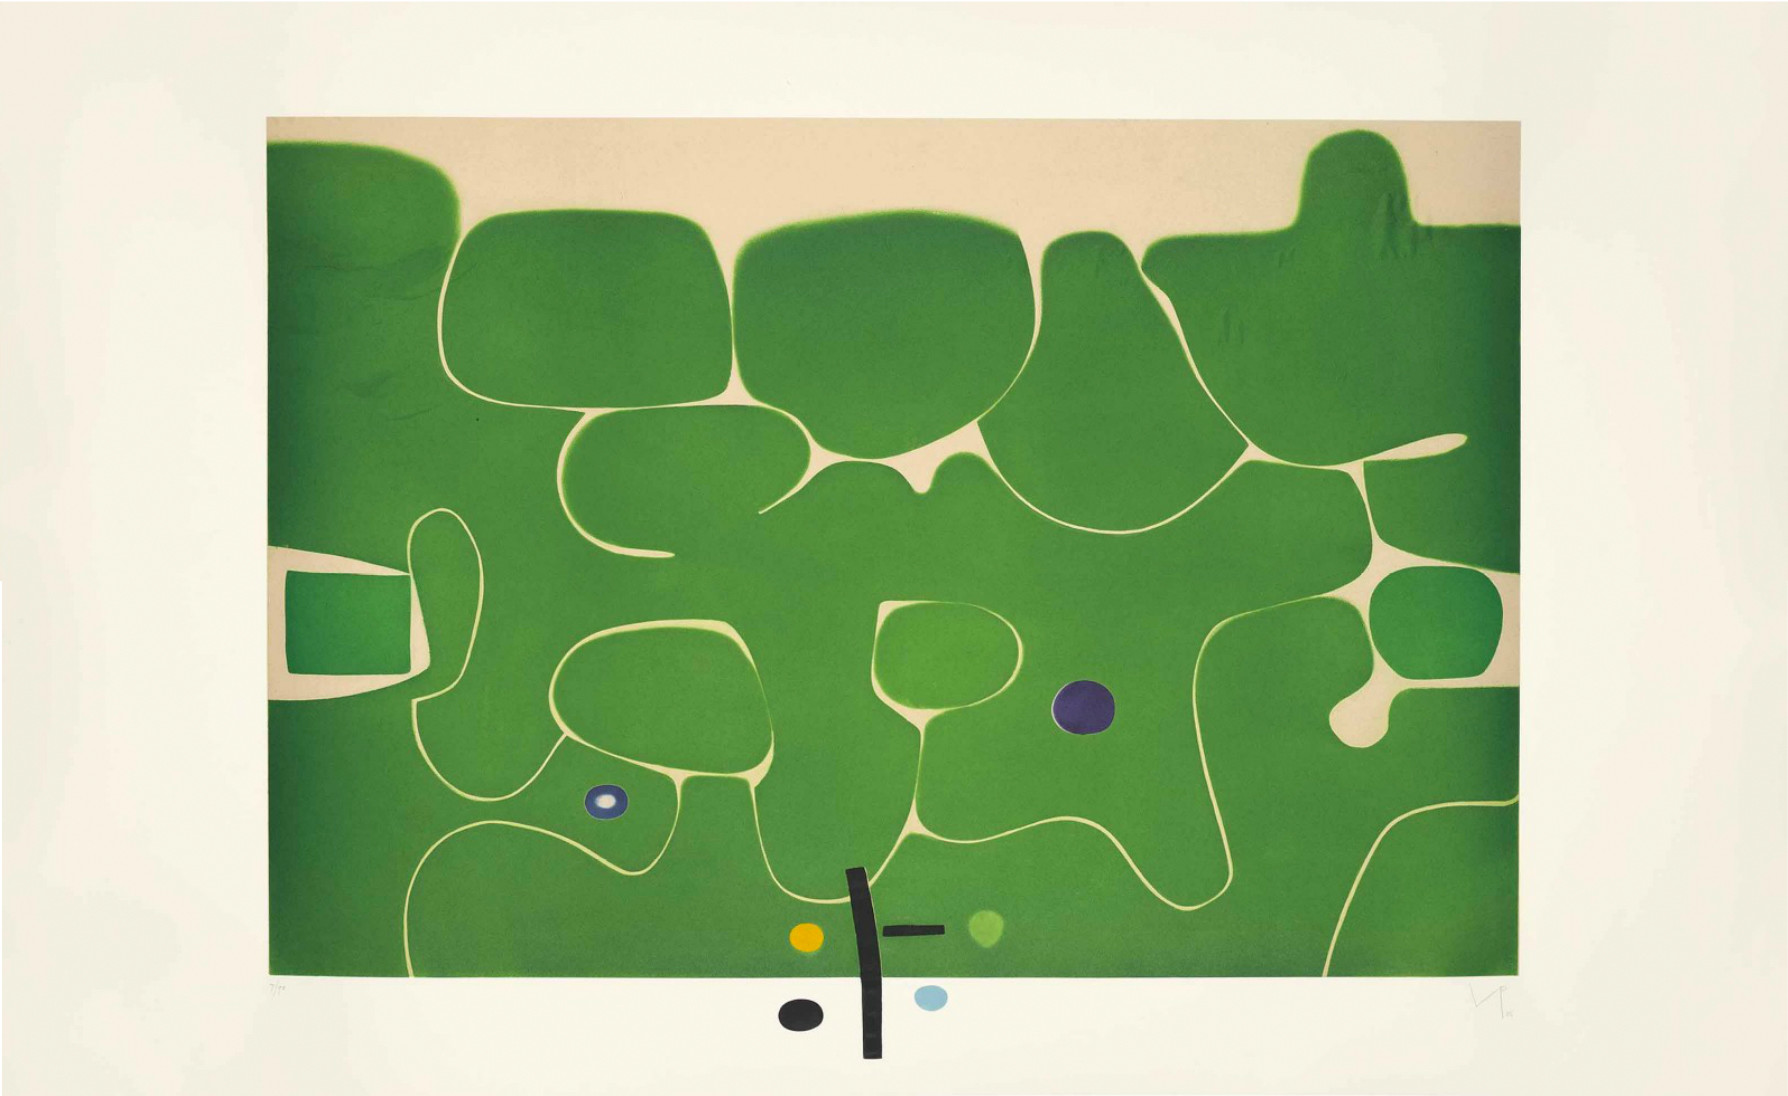 "<span class=""link fancybox-details-link""><a href=""/artists/84-victor-pasmore-ch-cbe/works/3803-victor-pasmore-ch-cbe-il-labirinto-della-psiche-1986/"">View Detail Page</a></span><div class=""artist""><strong>Victor Pasmore CH CBE</strong></div> 1908–1998 <div class=""title""><em>Il Labirinto della Psiche</em>, 1986</div> <div class=""signed_and_dated"">initialled and dated in pencil</div> <div class=""medium"">etching and aquatint printed in colours, on Fabriano paper</div> <div class=""dimensions"">plate size: 76 x 111 cm<br /> sheet size: 98.5 X 159.7 cm</div> <div class=""edition_details"">7/90, aside from 15 Artist's Proofs</div><div class=""copyright_line"">© The Estate of Victor Pasmore</div>"